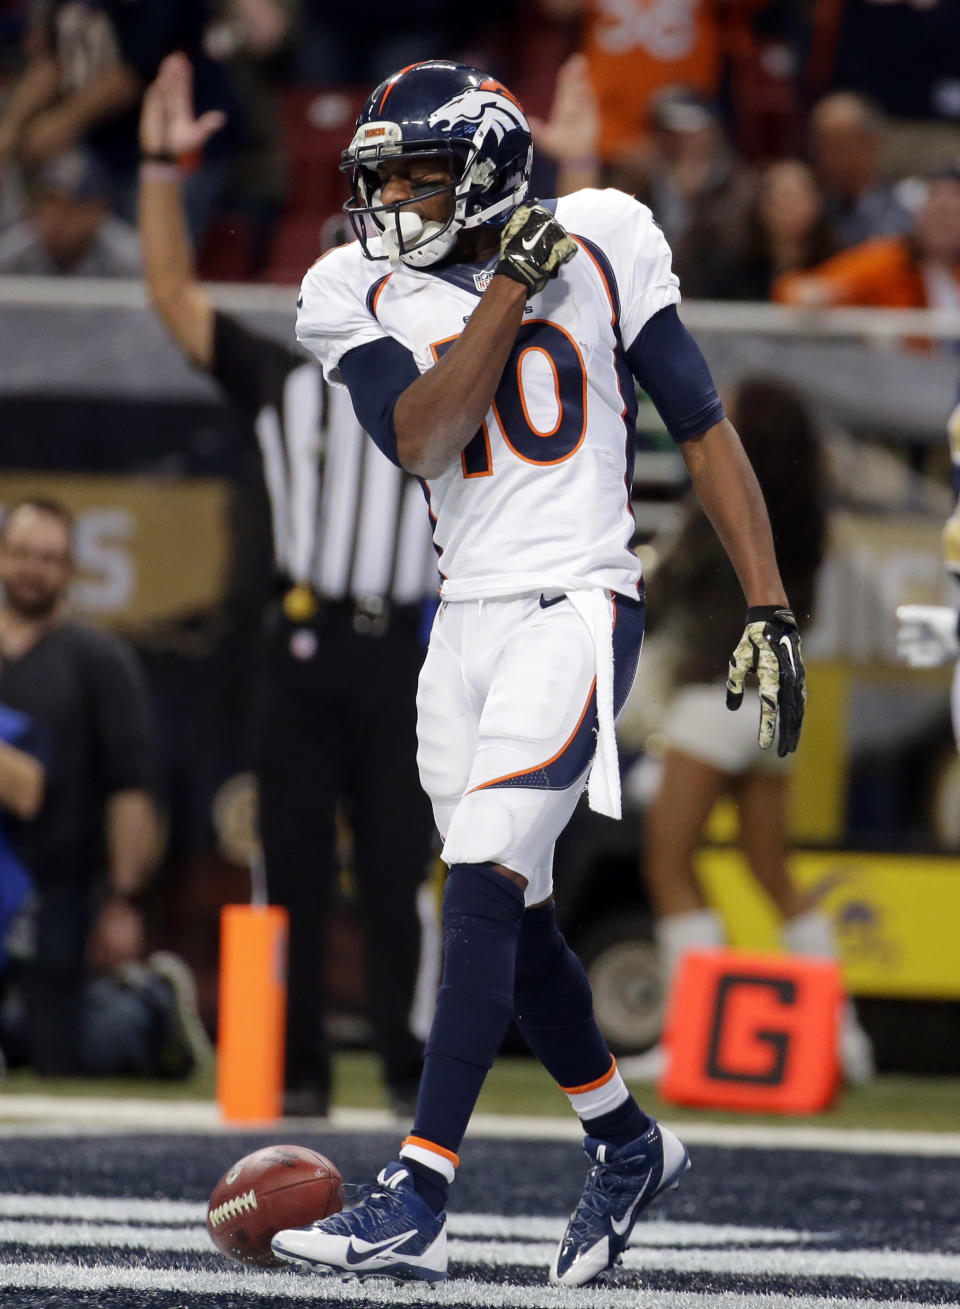 Denver Broncos wide receiver Emmanuel Sanders celebrates after catching a 42-yard pass for a touchdown during the second quarter of an NFL football game against the St. Louis Rams, Sunday, Nov. 16, 2014, in St. Louis. (AP Photo/Charlie Riedel)